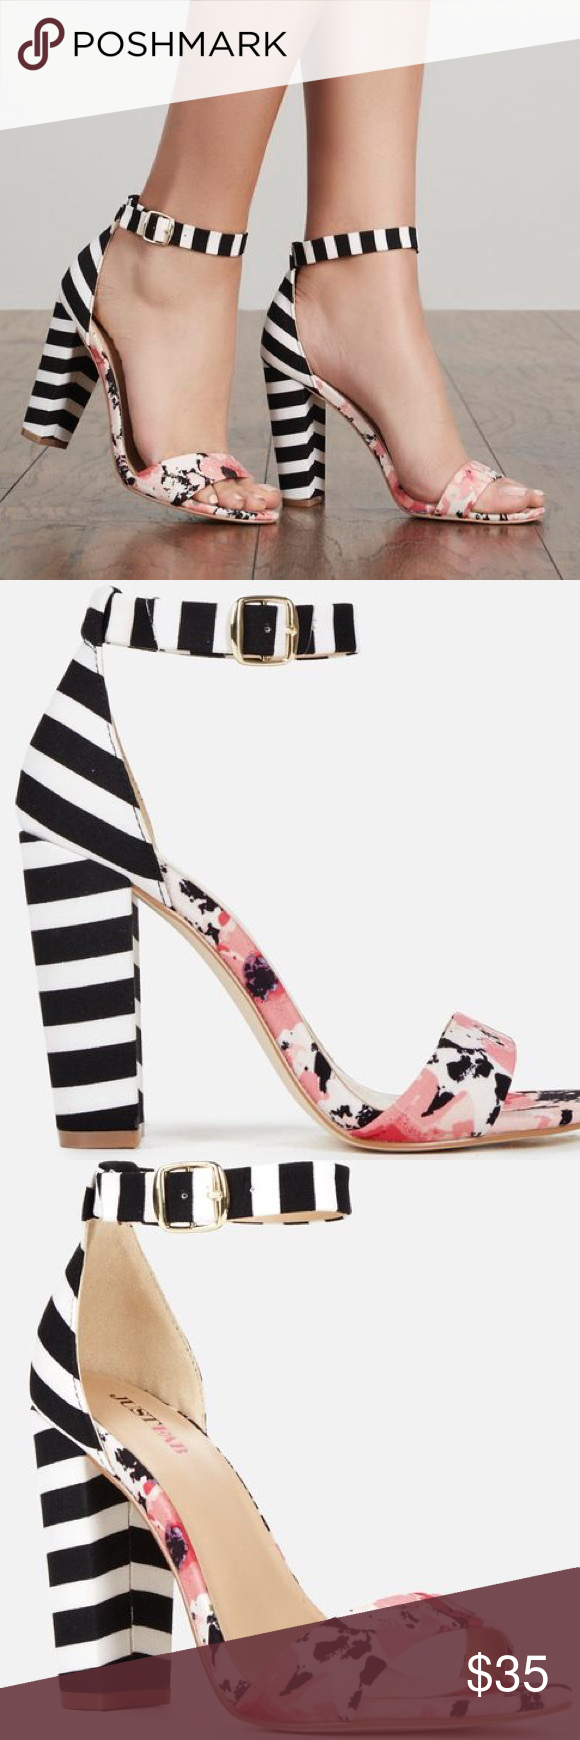 eceae2177423 JustFab Floral Striped Sandal Heel Perfect shoe to add